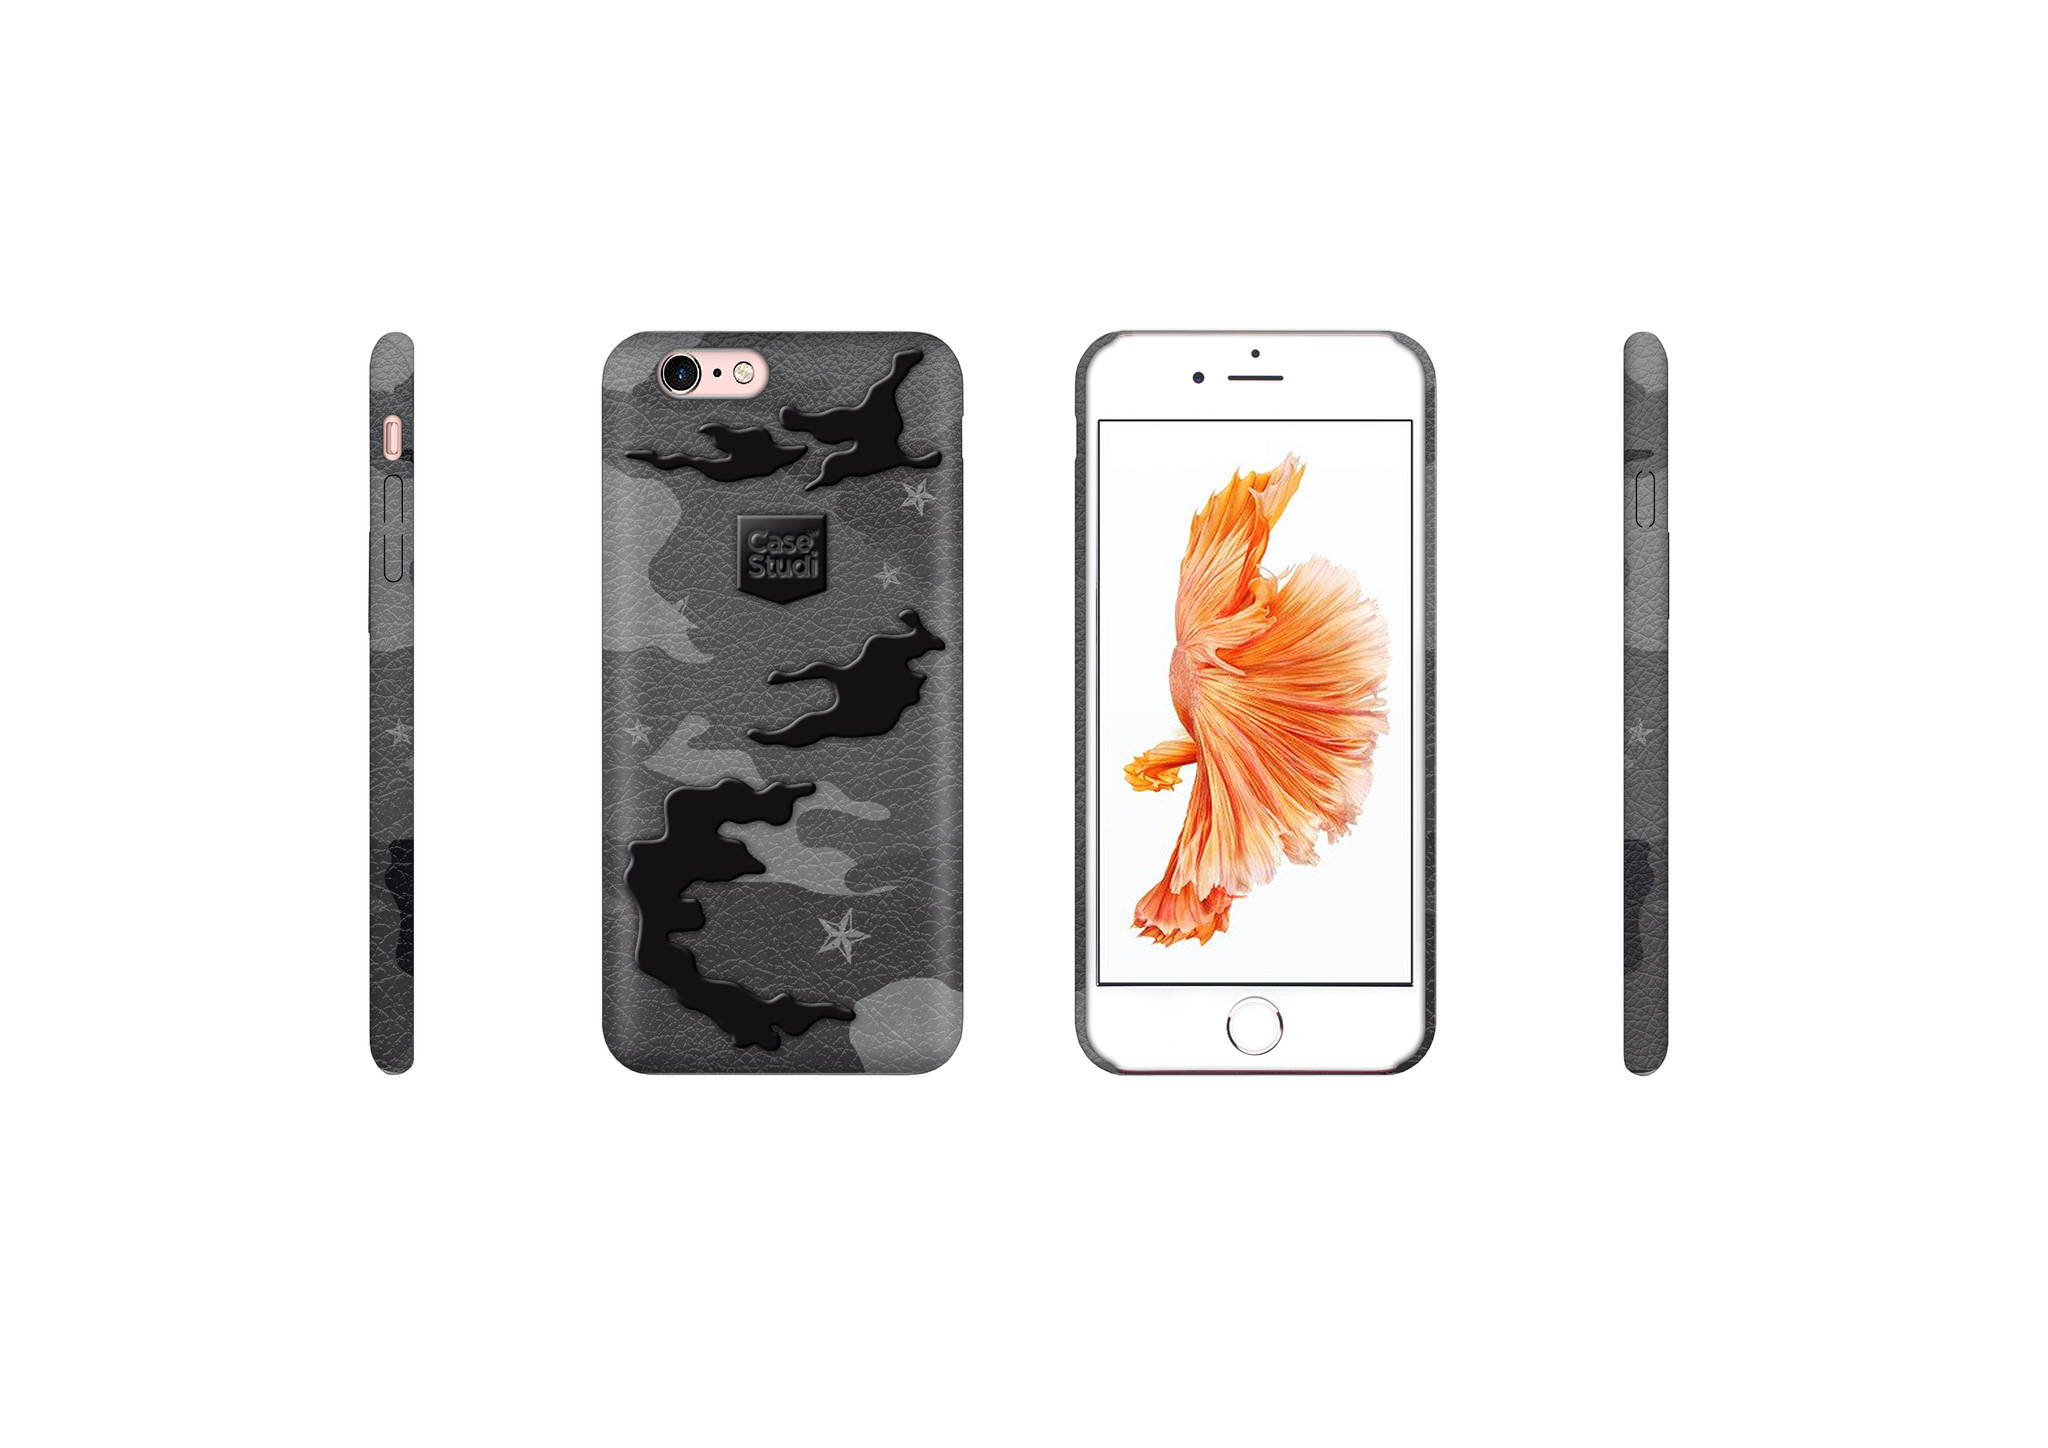 UltraSlim iPhone 6 / 6s case - Camo